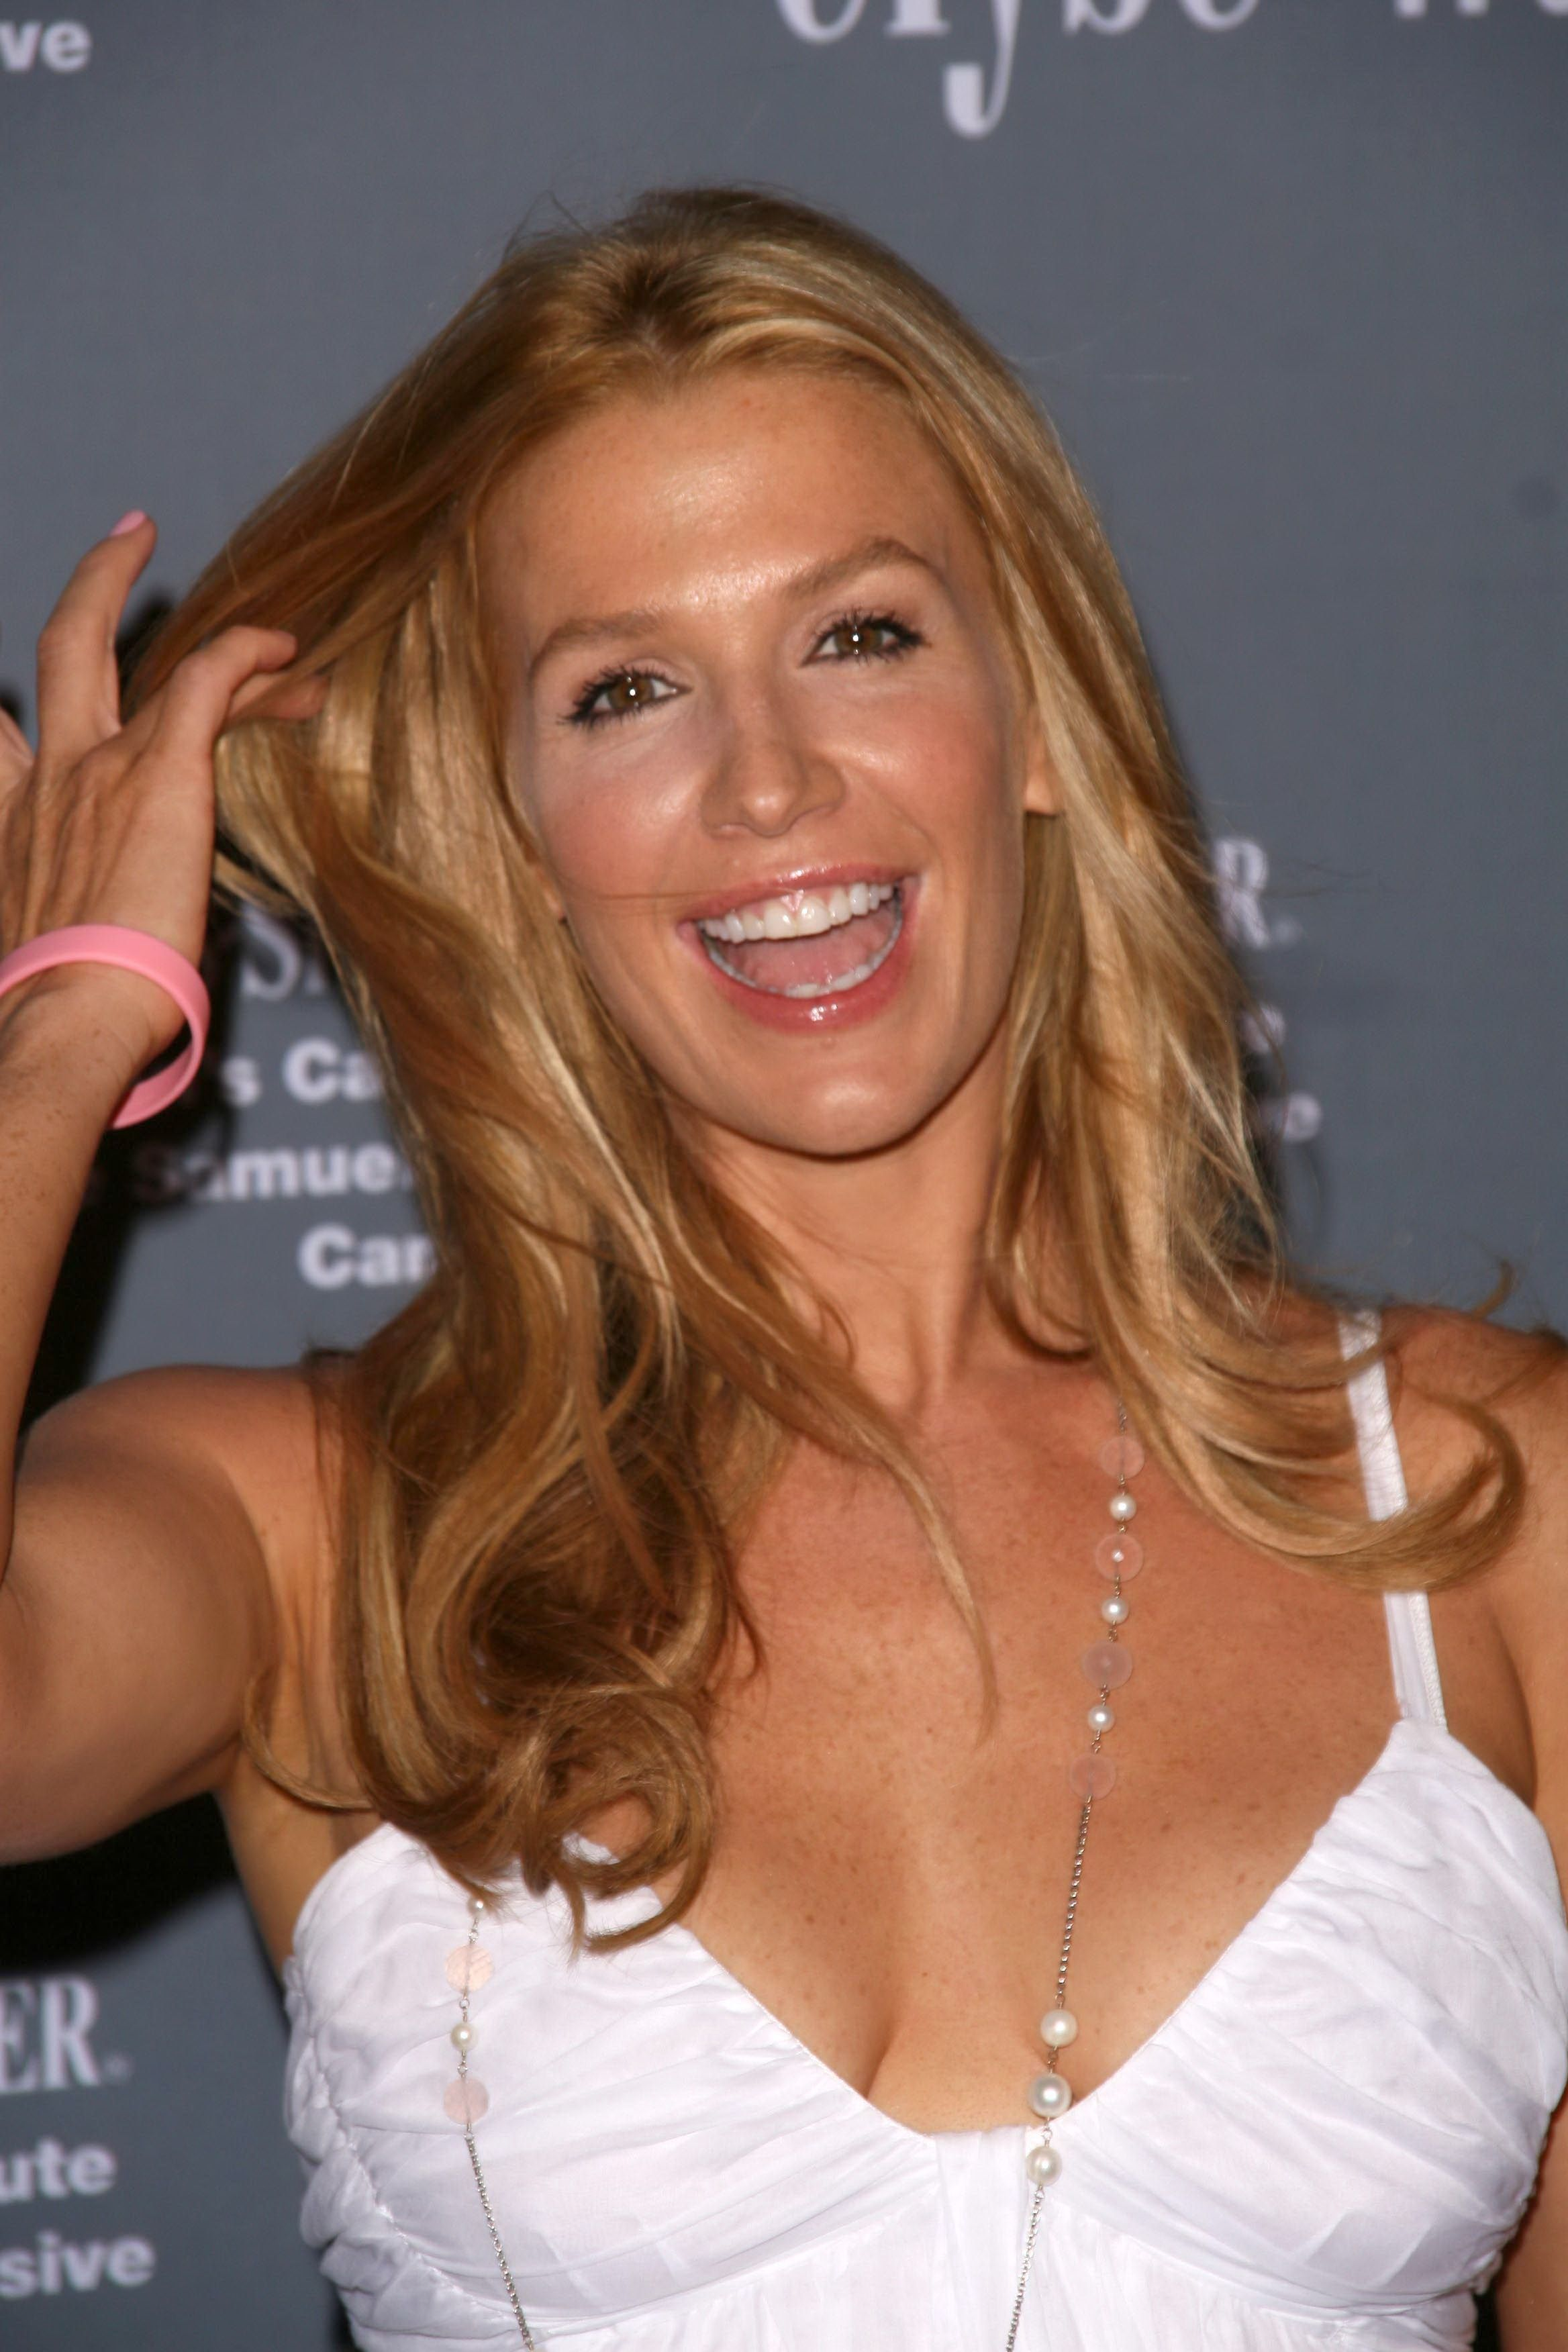 Poppy Montgomery Poppy Montgomery new images